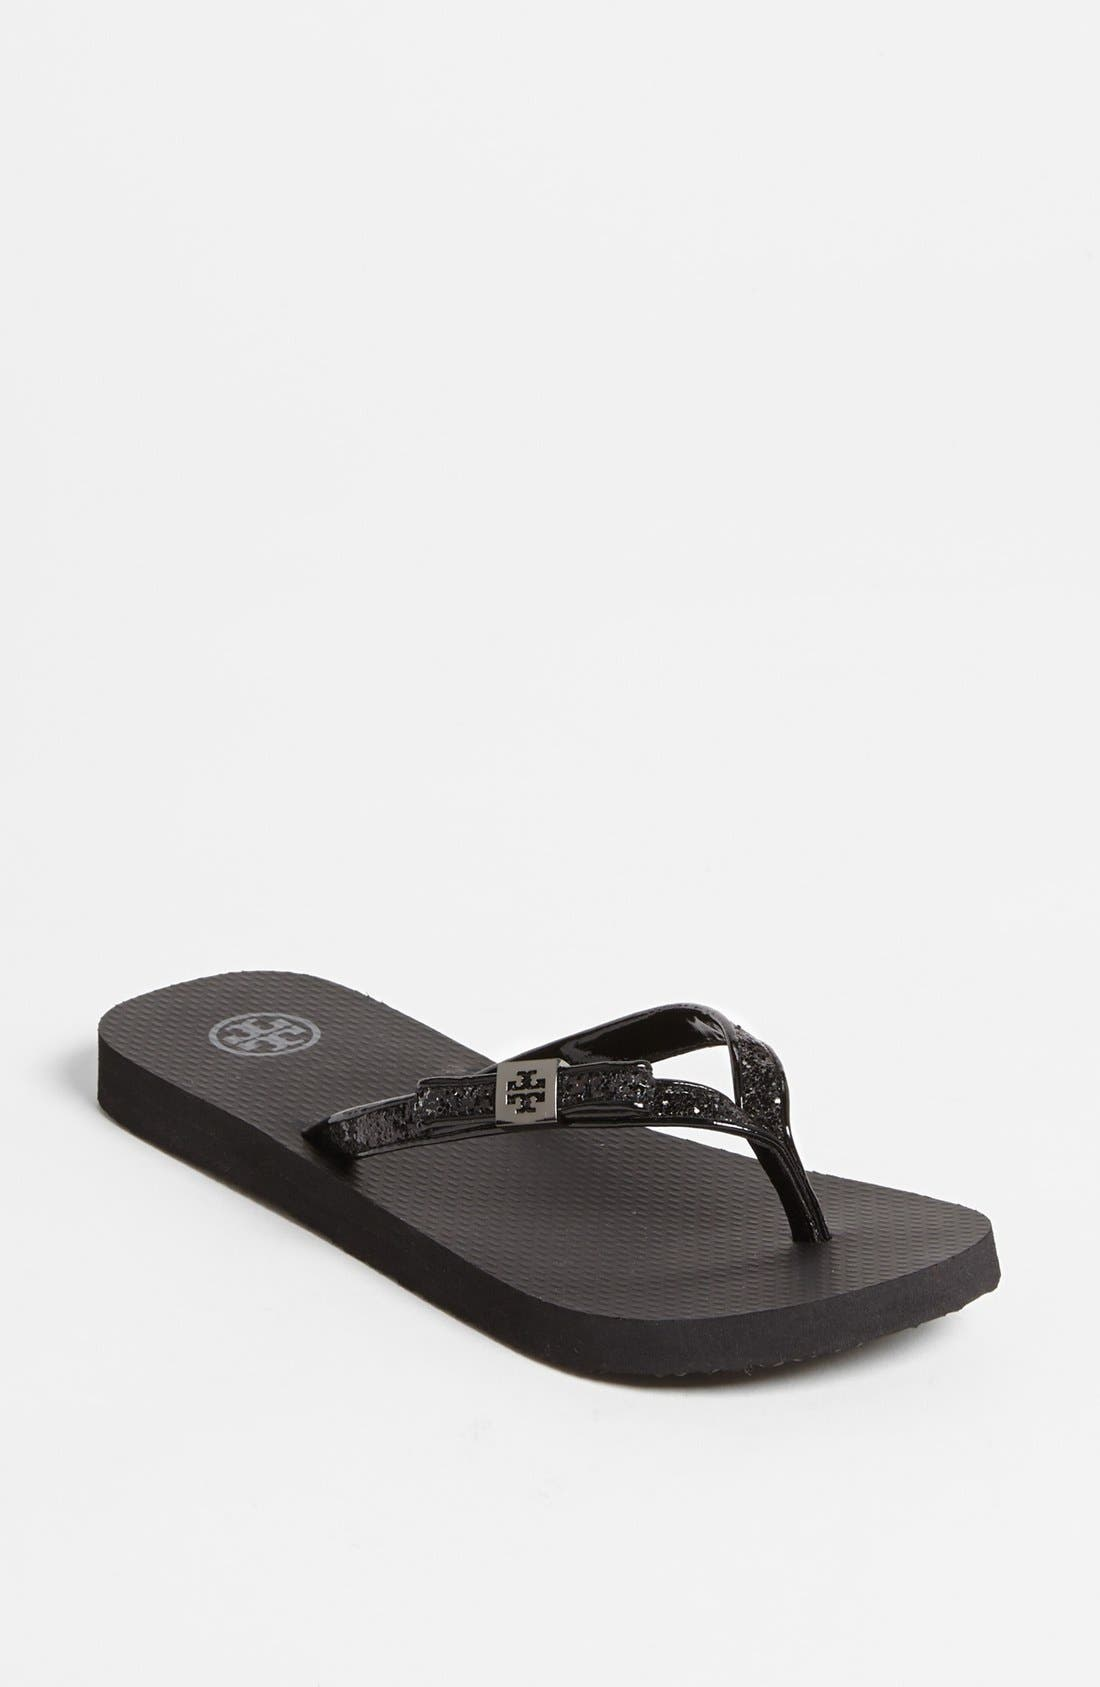 Alternate Image 1 Selected - Tory Burch 'Carey' Flip Flop